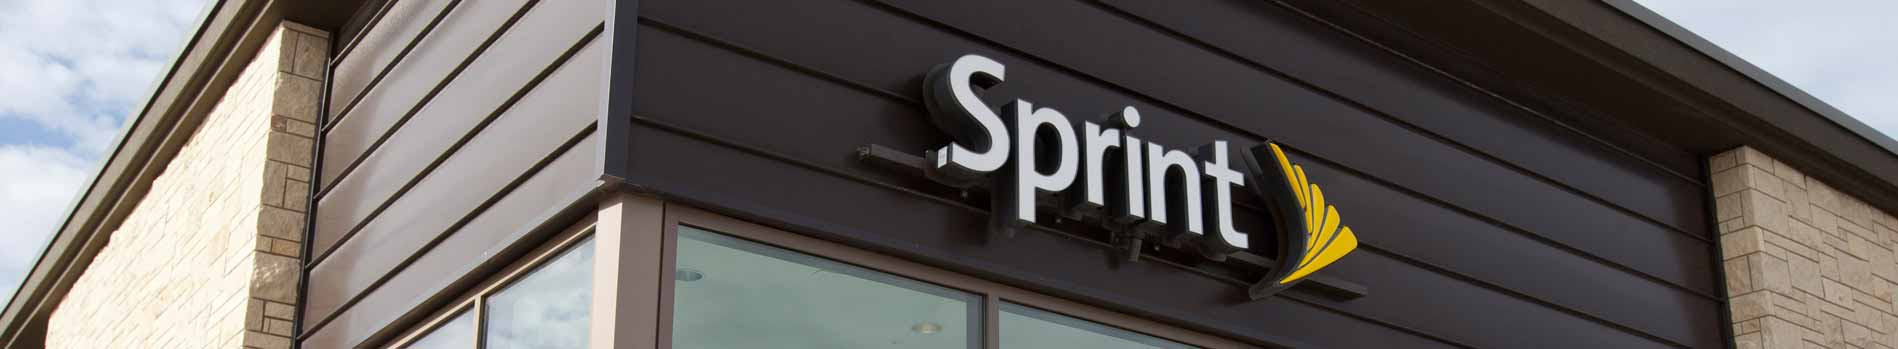 Sprint coupons for cell phones and their accessories